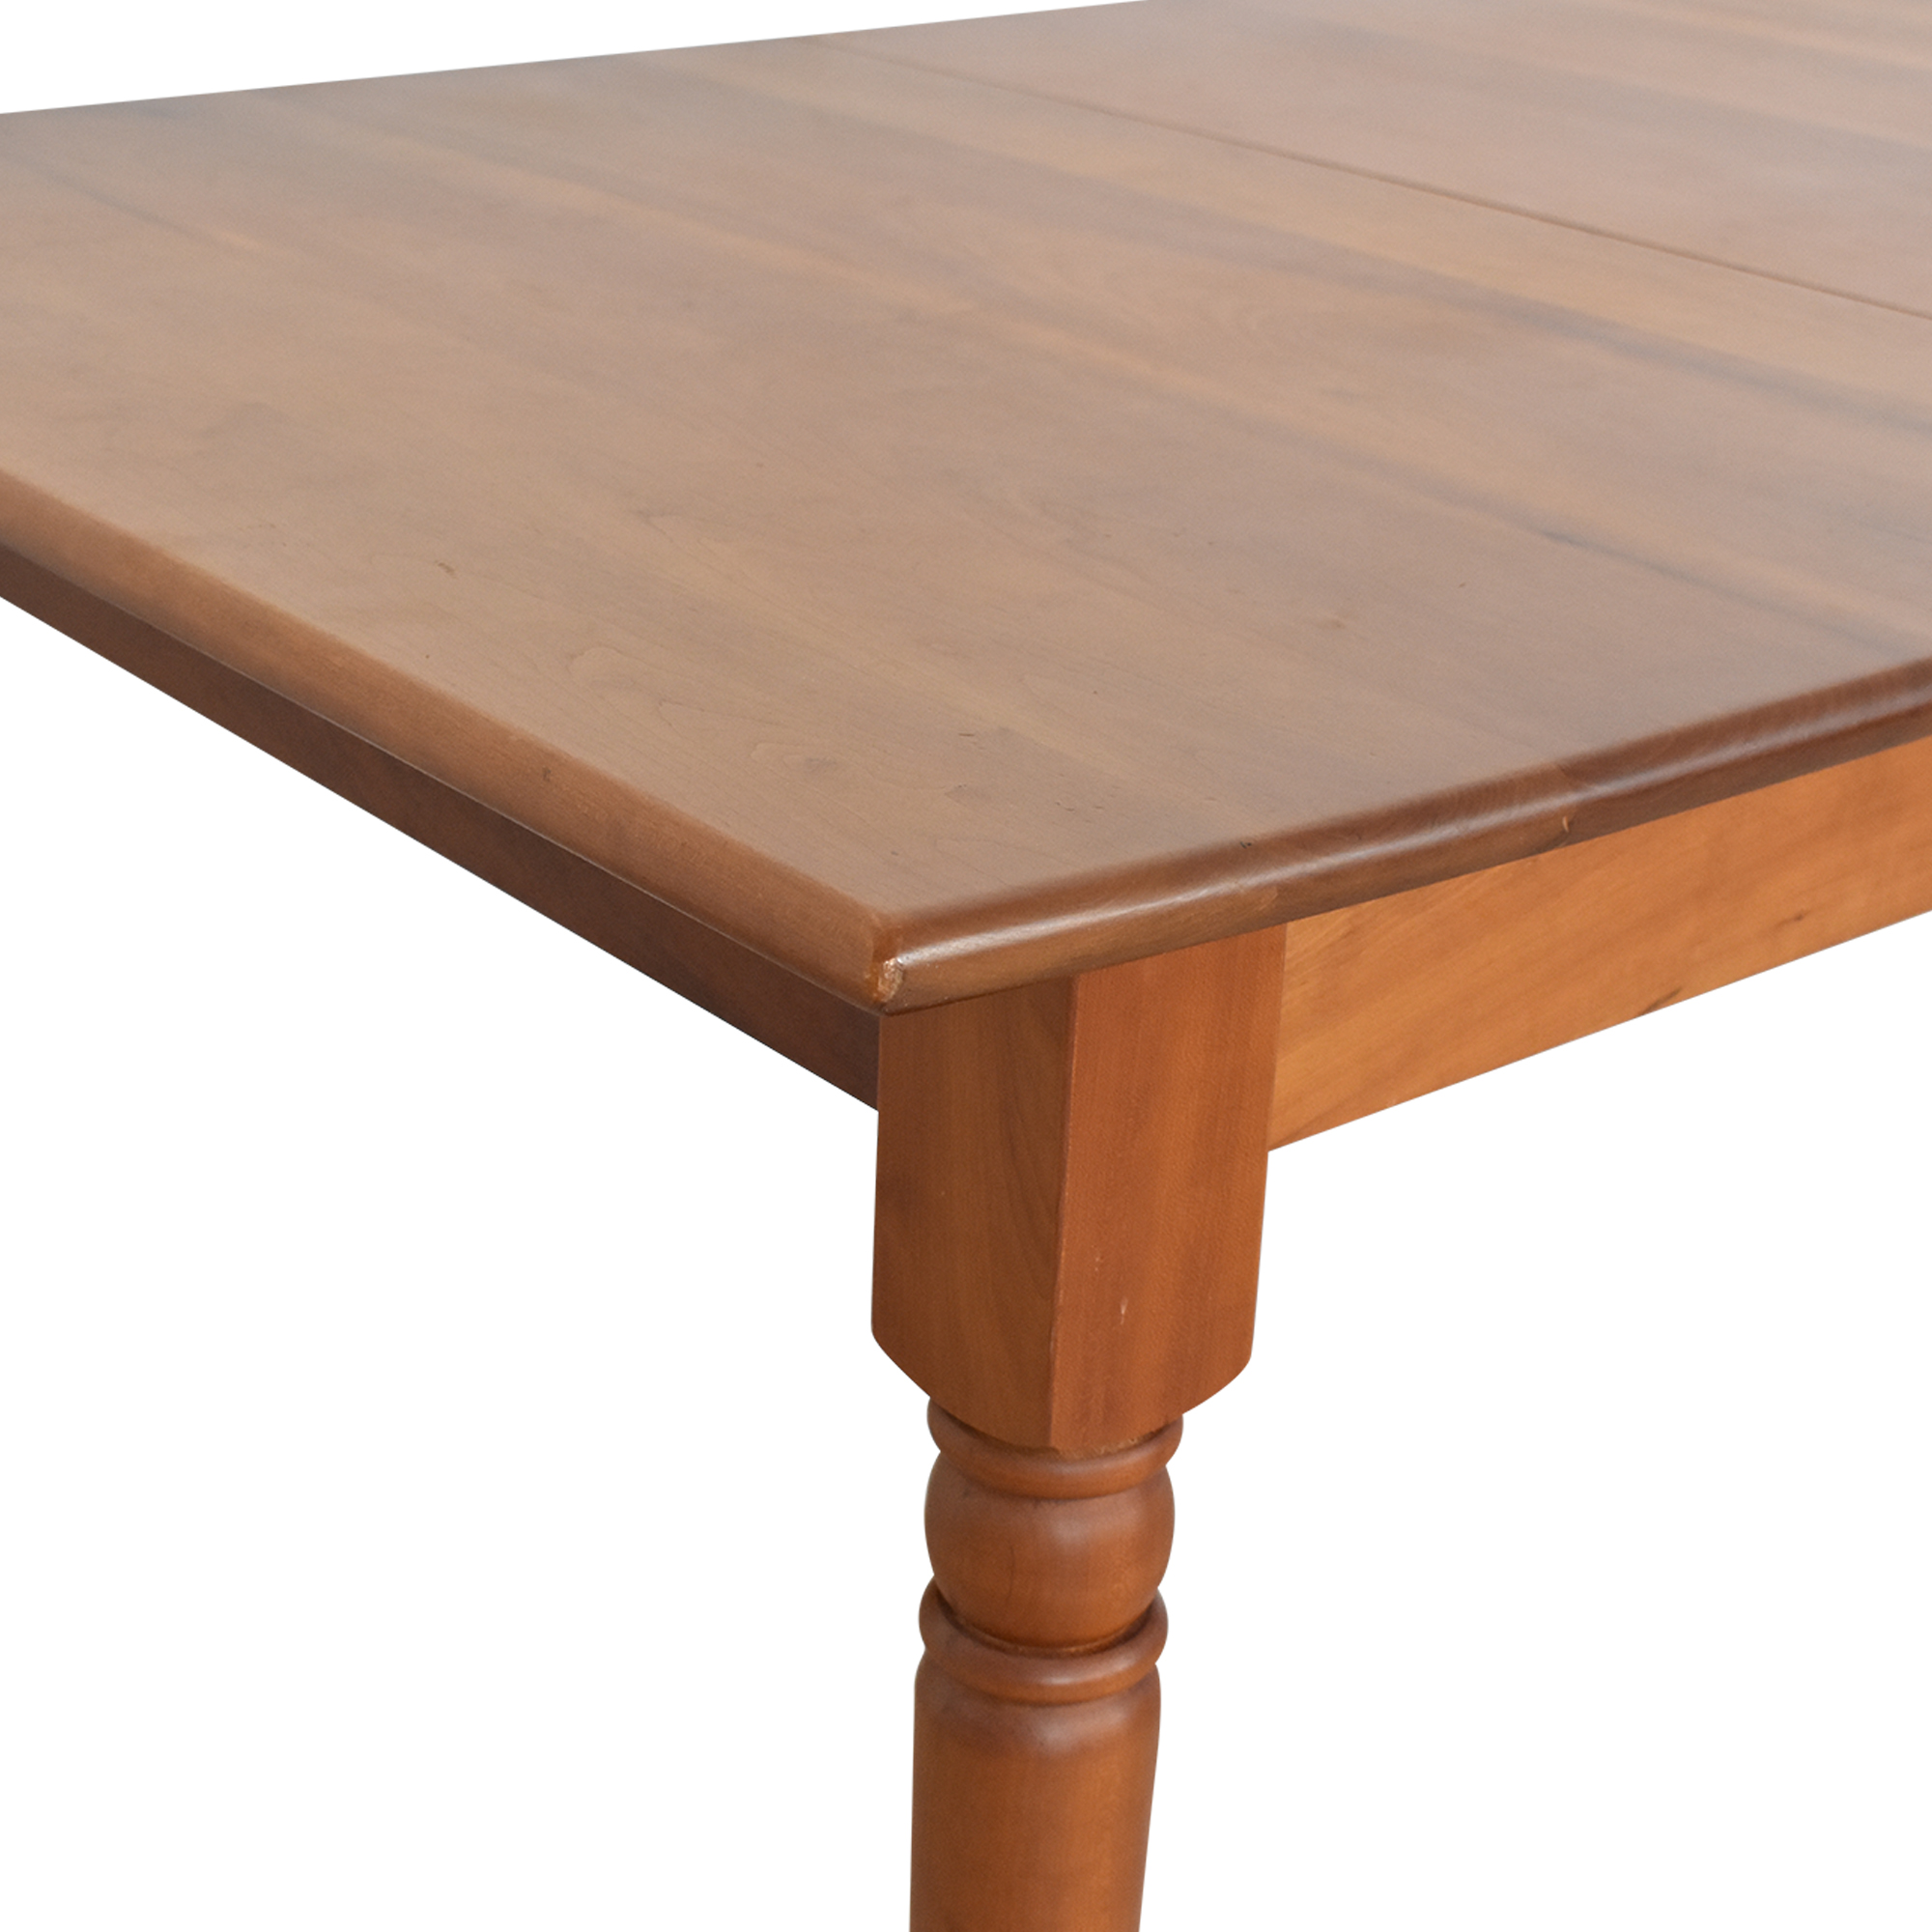 Asher Benjamin Studio Asher Benjamin Studio Extended Dining Table second hand